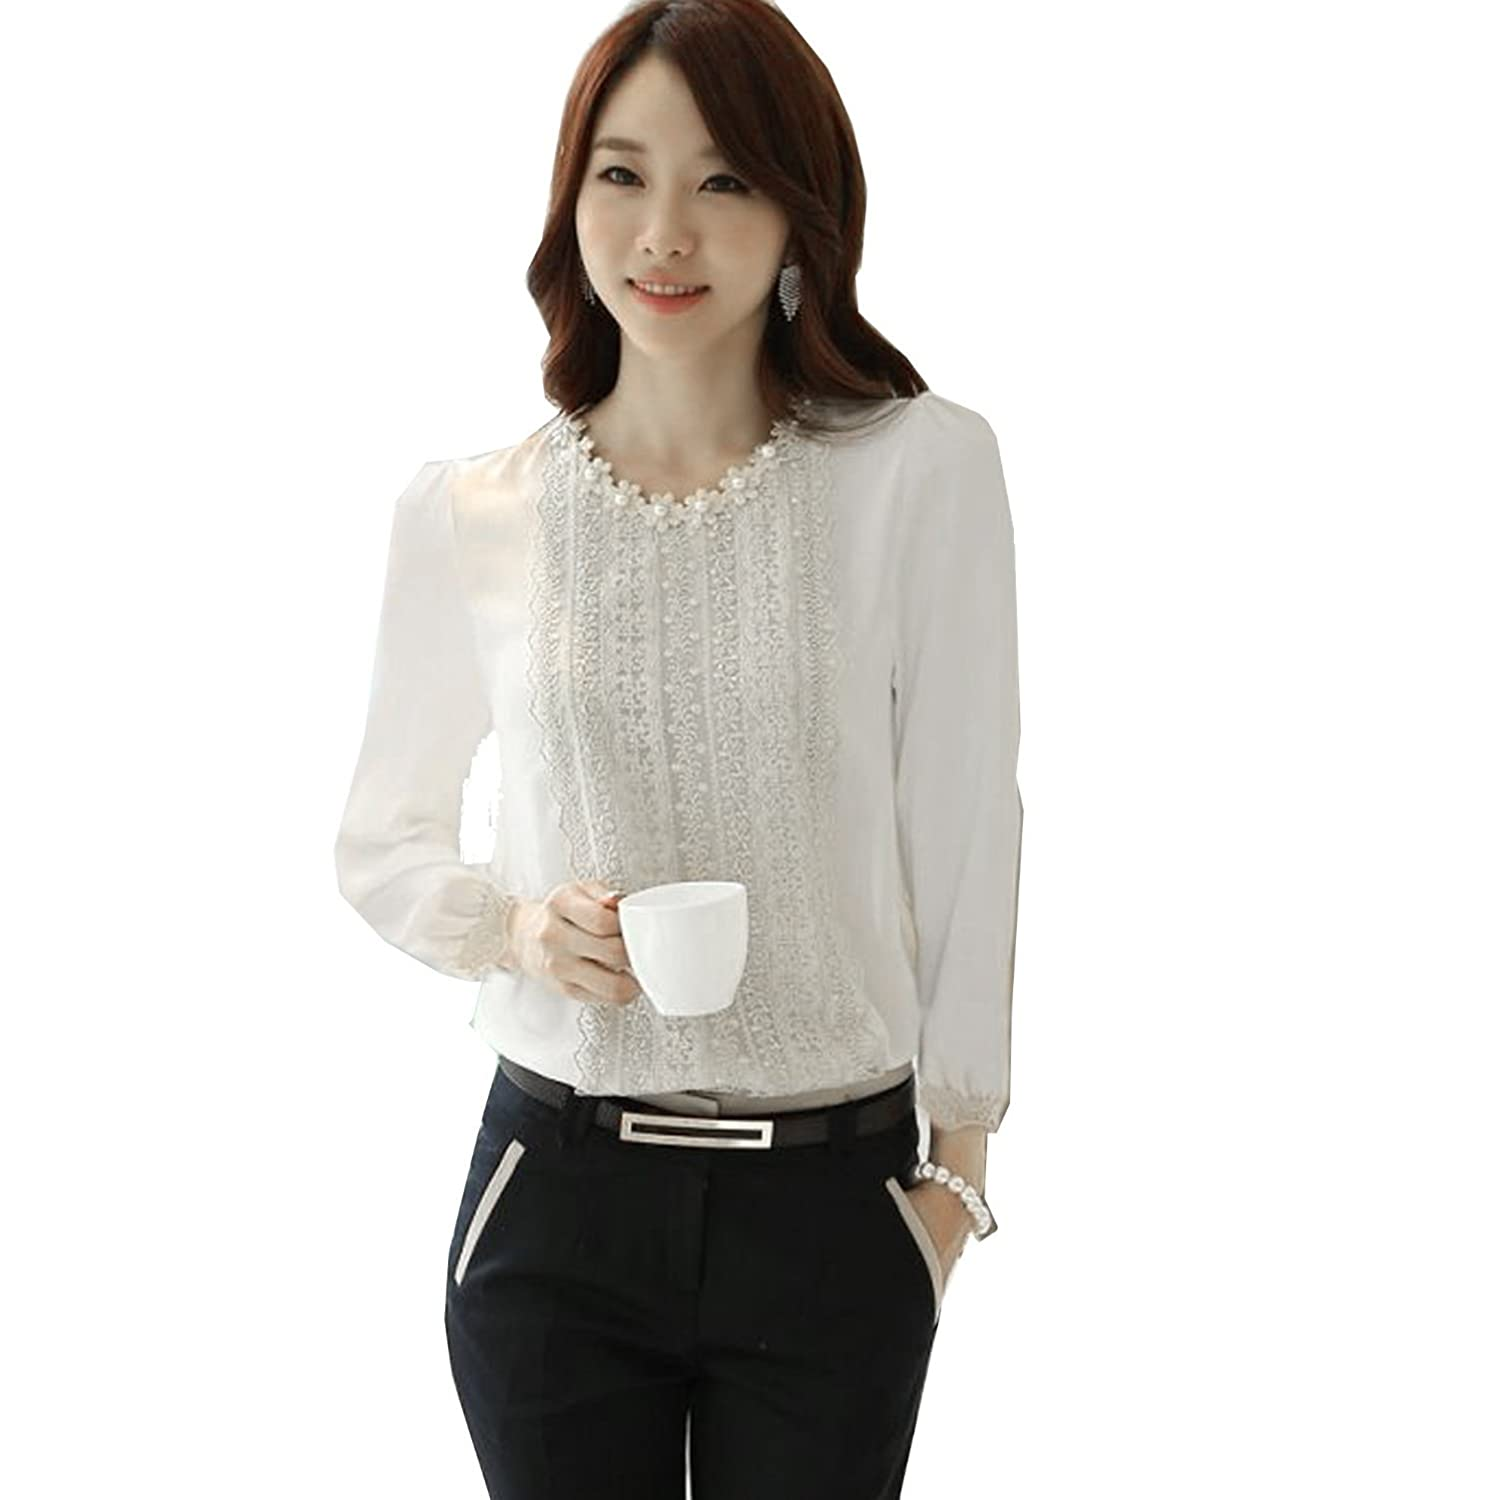 ACEFAST INC Women's Casual Long-Sleeved OL Patchwork Autumn Occupation Shirt